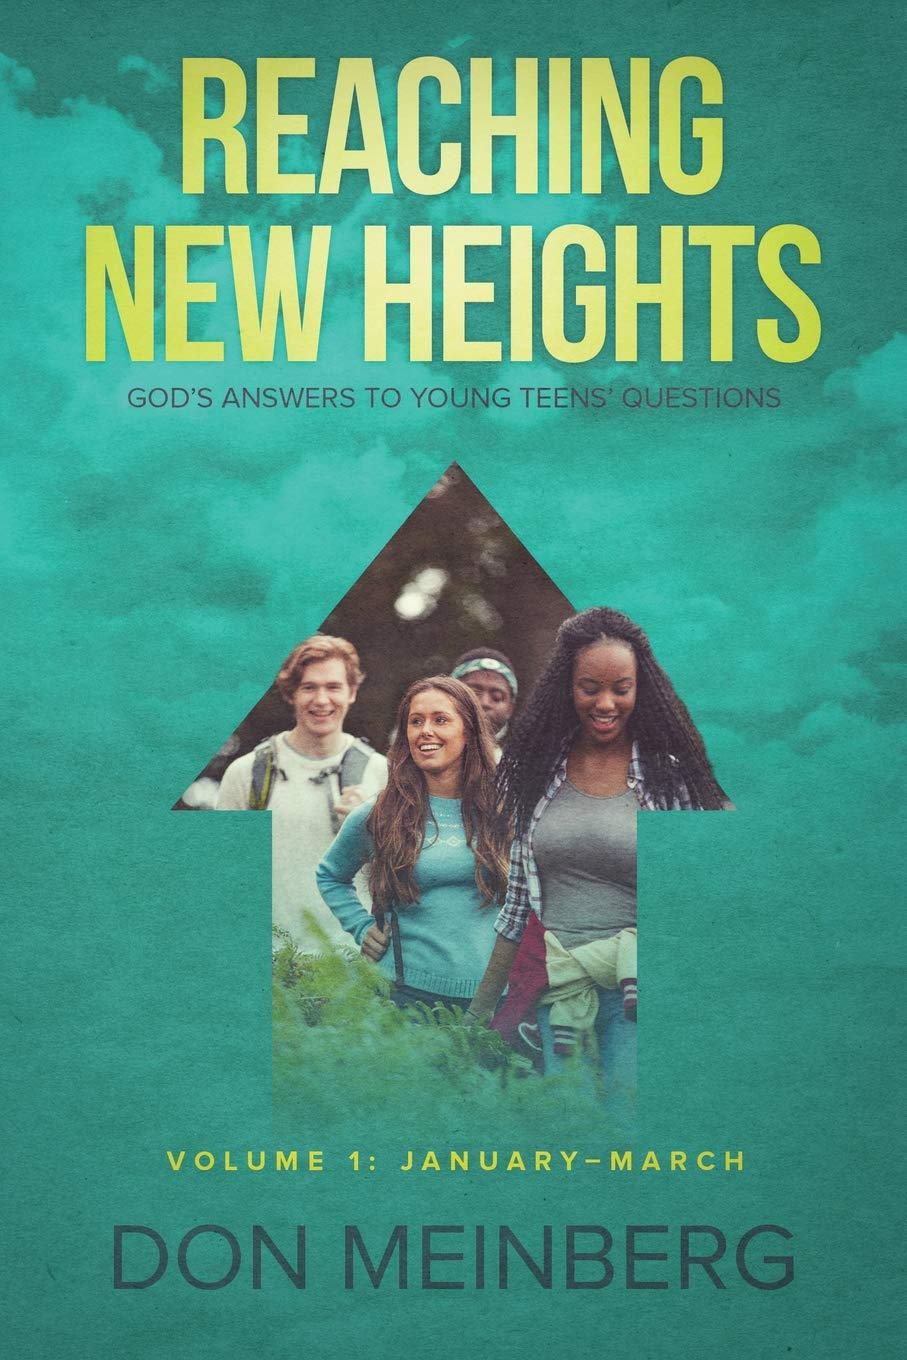 Amazon.com: Reaching New Heights: God's Answers to Young Teens' Questions Volume  1: January-March (9781632962478): Don Meinberg: Books